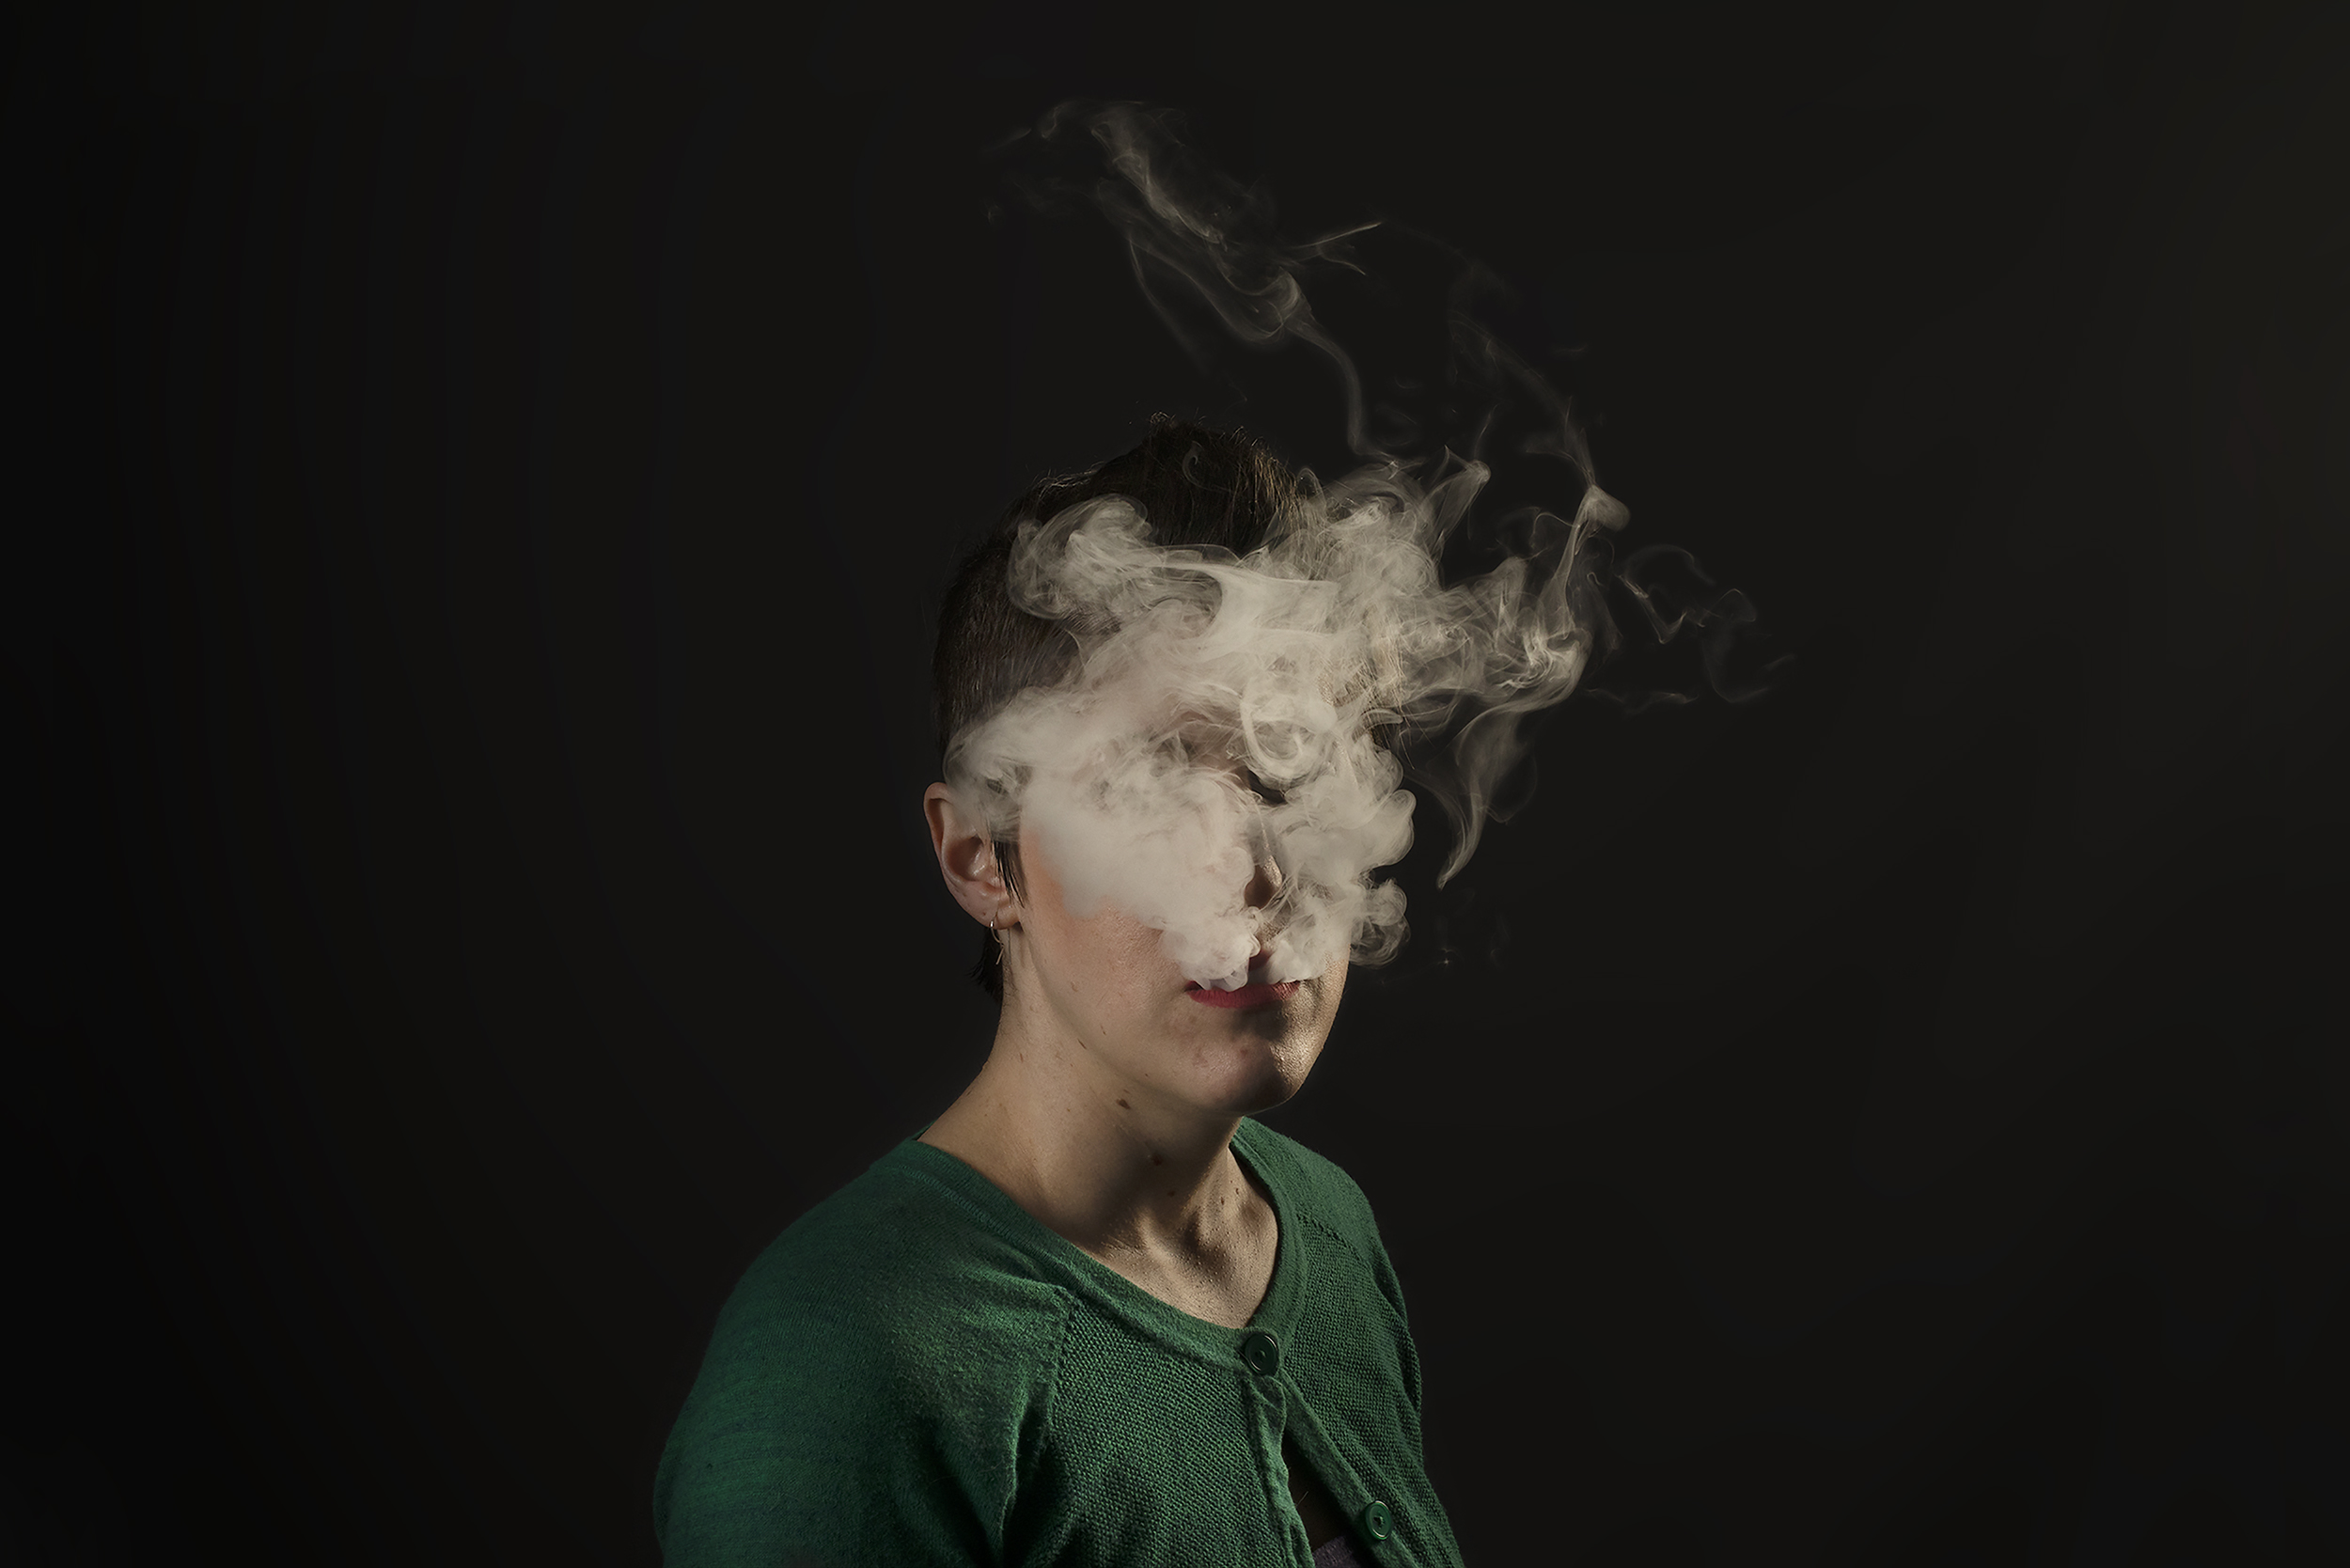 a puff of vapor covers a young woman's face